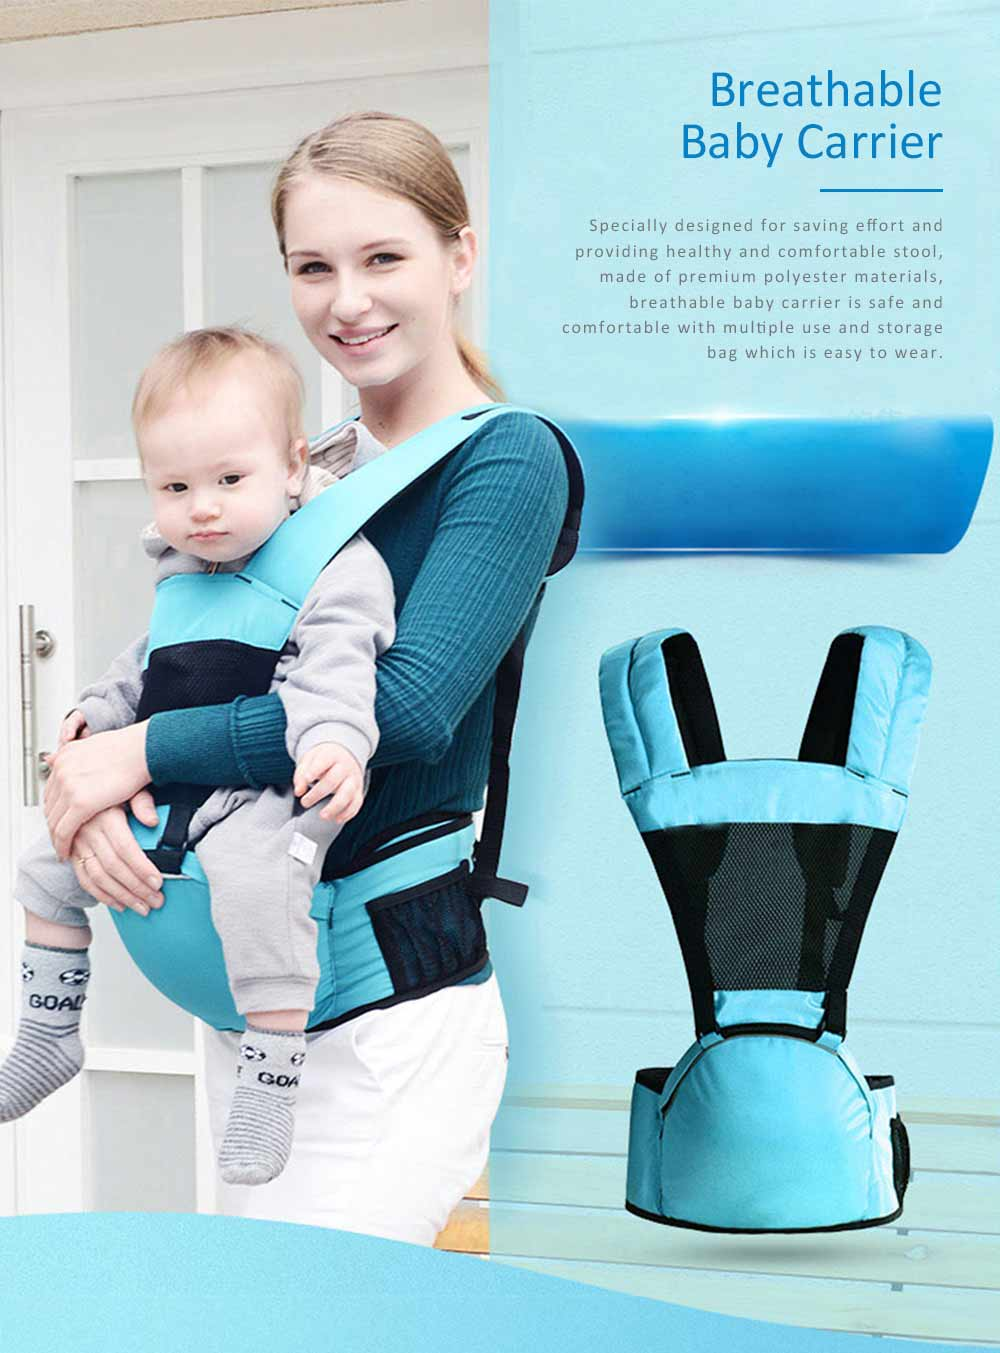 Breathable Baby Carrier for Summer, Durable Baby Lab with Multiple Functions and Storage Bag 0